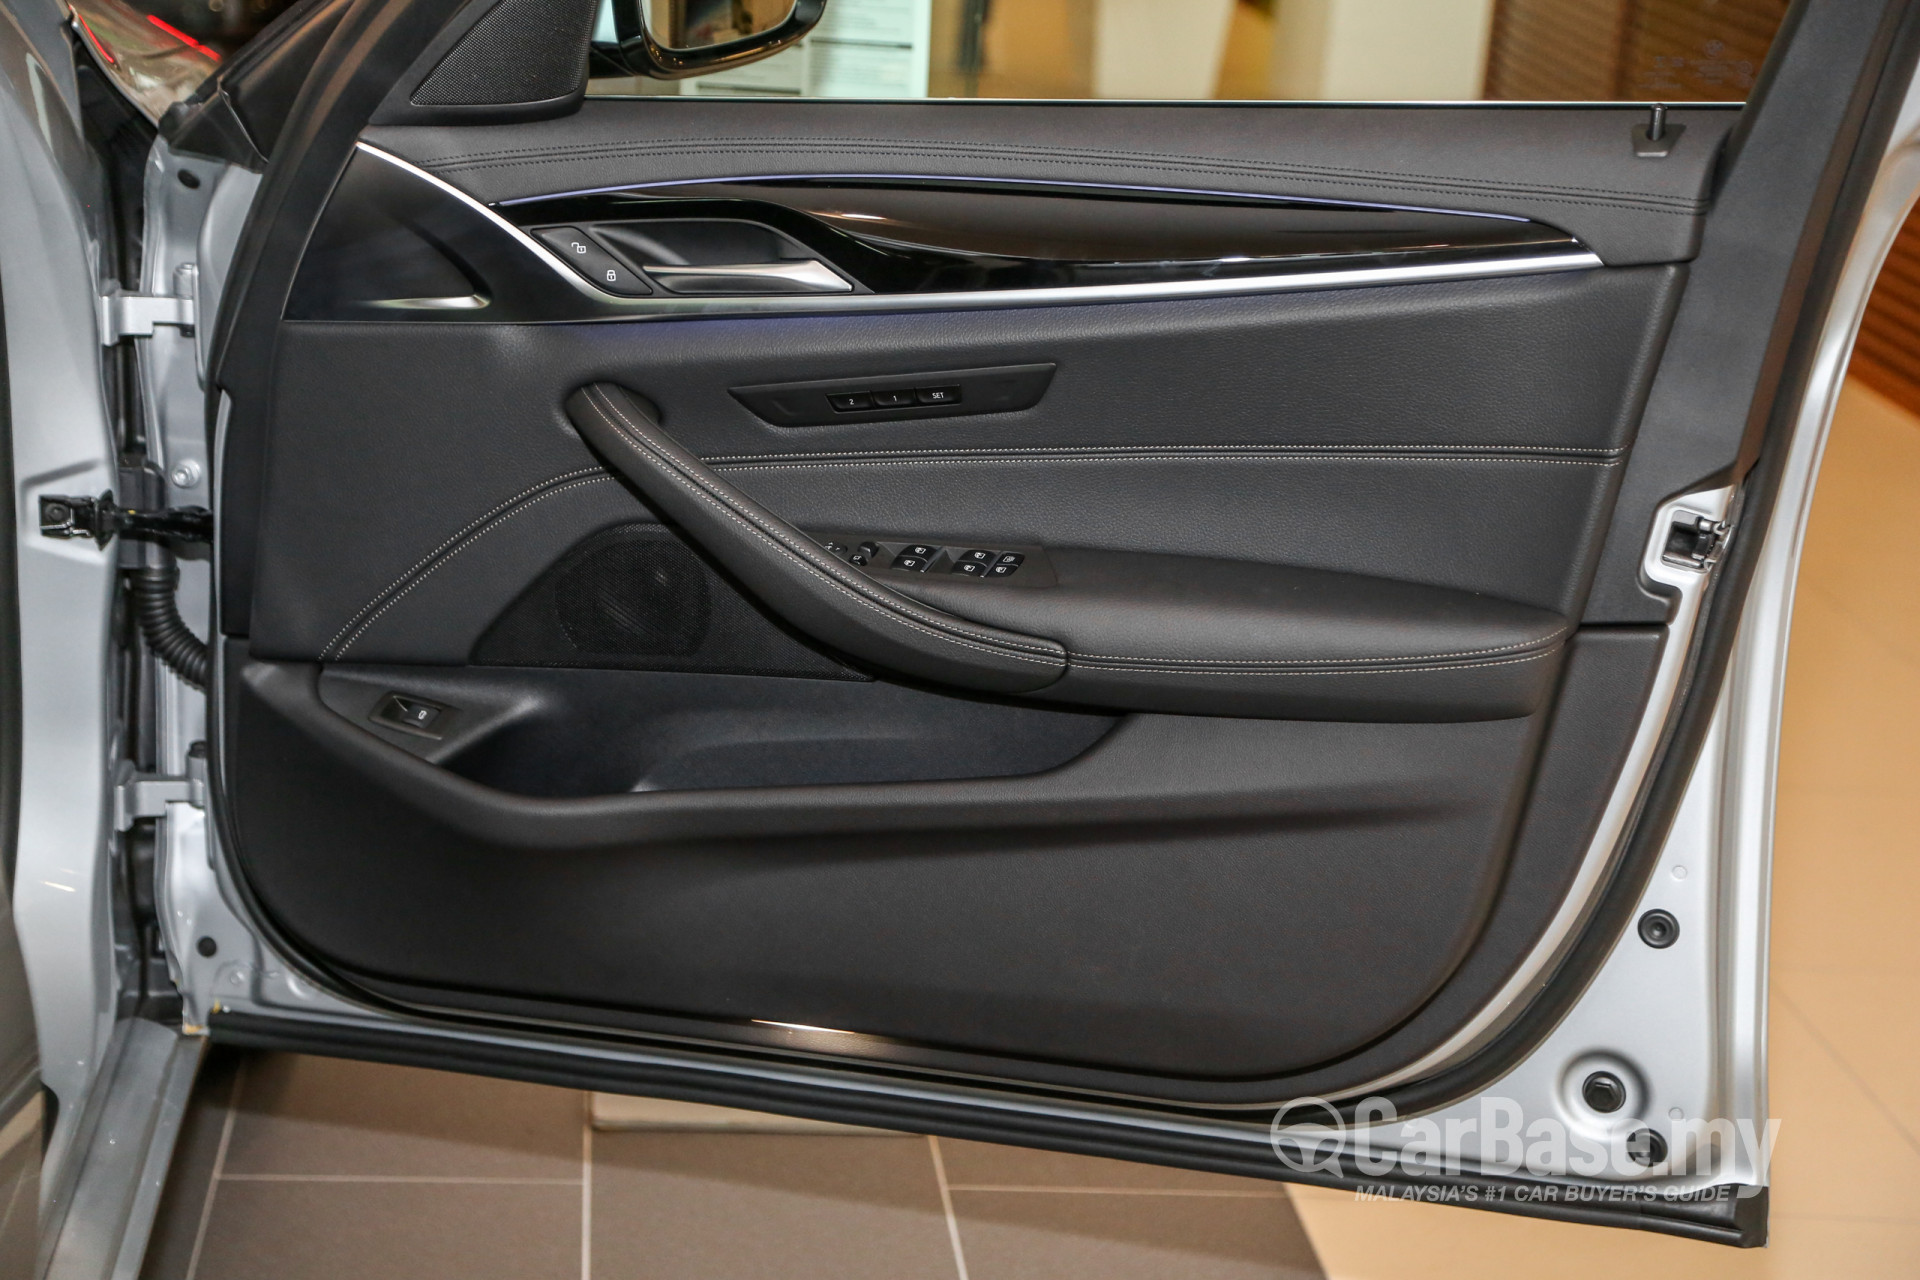 BMW 5 Series G30 (2017) Interior Image #56341 in Malaysia - Reviews